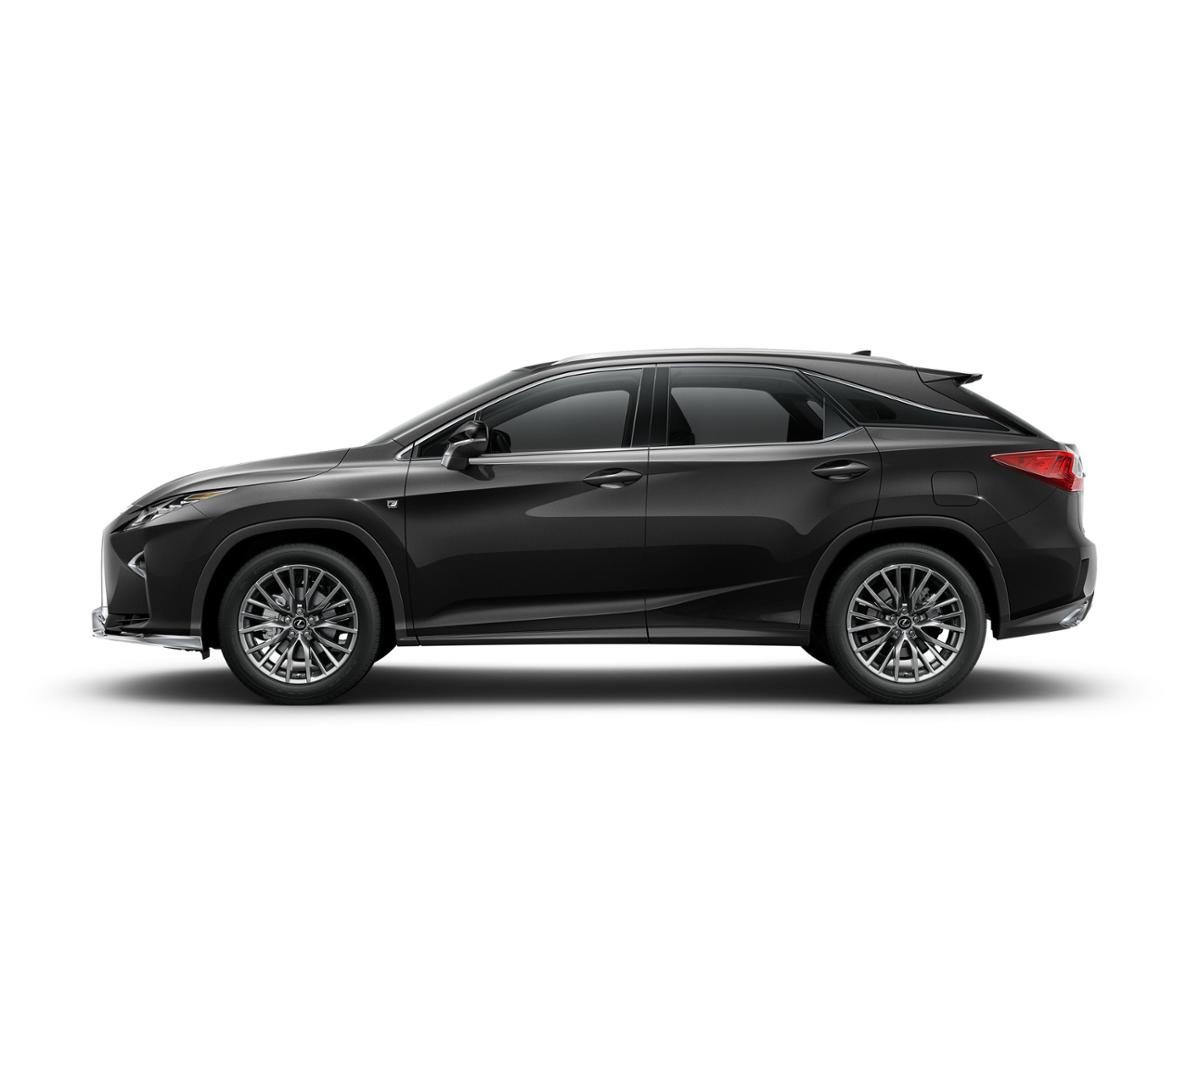 New 2019 Lexus RX 350 For Sale In Farmingdale, NY